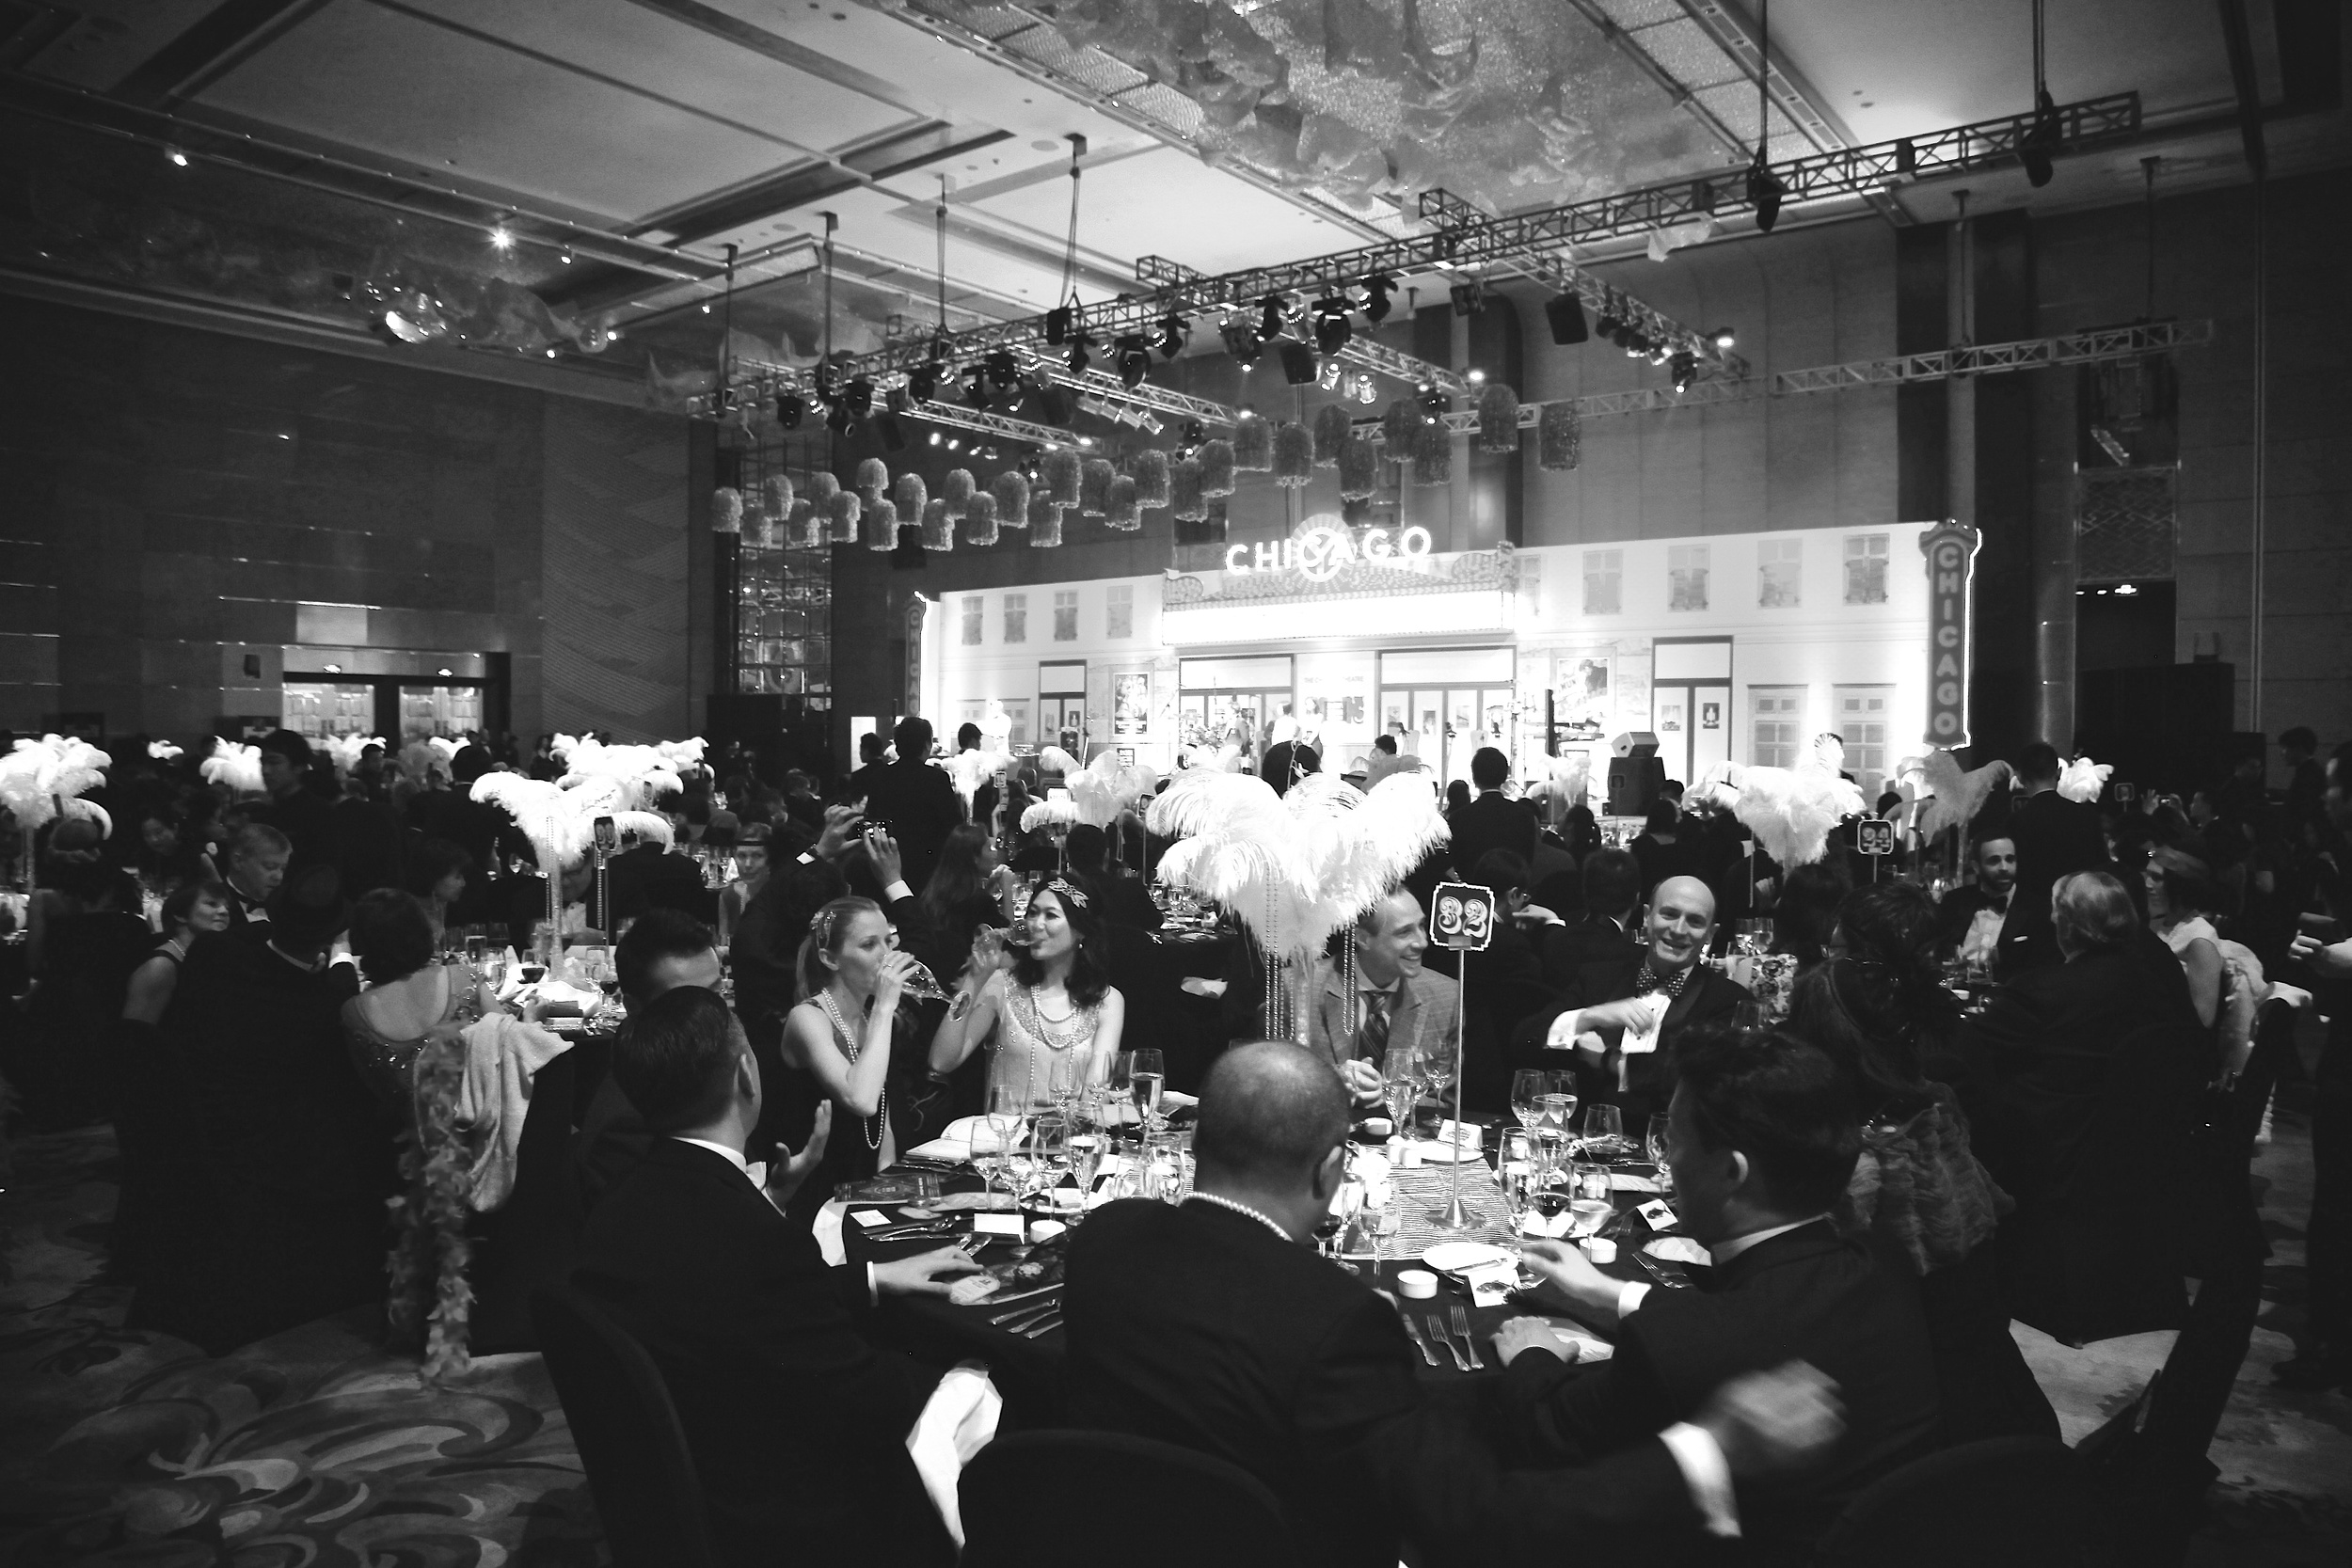 GALAS    Space: Hotel Ballroom, 1000 - 1500m2 - Guests: 300 - 500 people - Content: Concept Design & Visual Identity, Lobby Design, Ballroom Design, Table Display, Stage Design, Performance and Acts Curation.  See  AMERICAN CHAMBER OF COMMERCE CHARITY GALA ,  NANJING INTERNATIONAL CLUB GLITTER & GLAMOUR GALA.